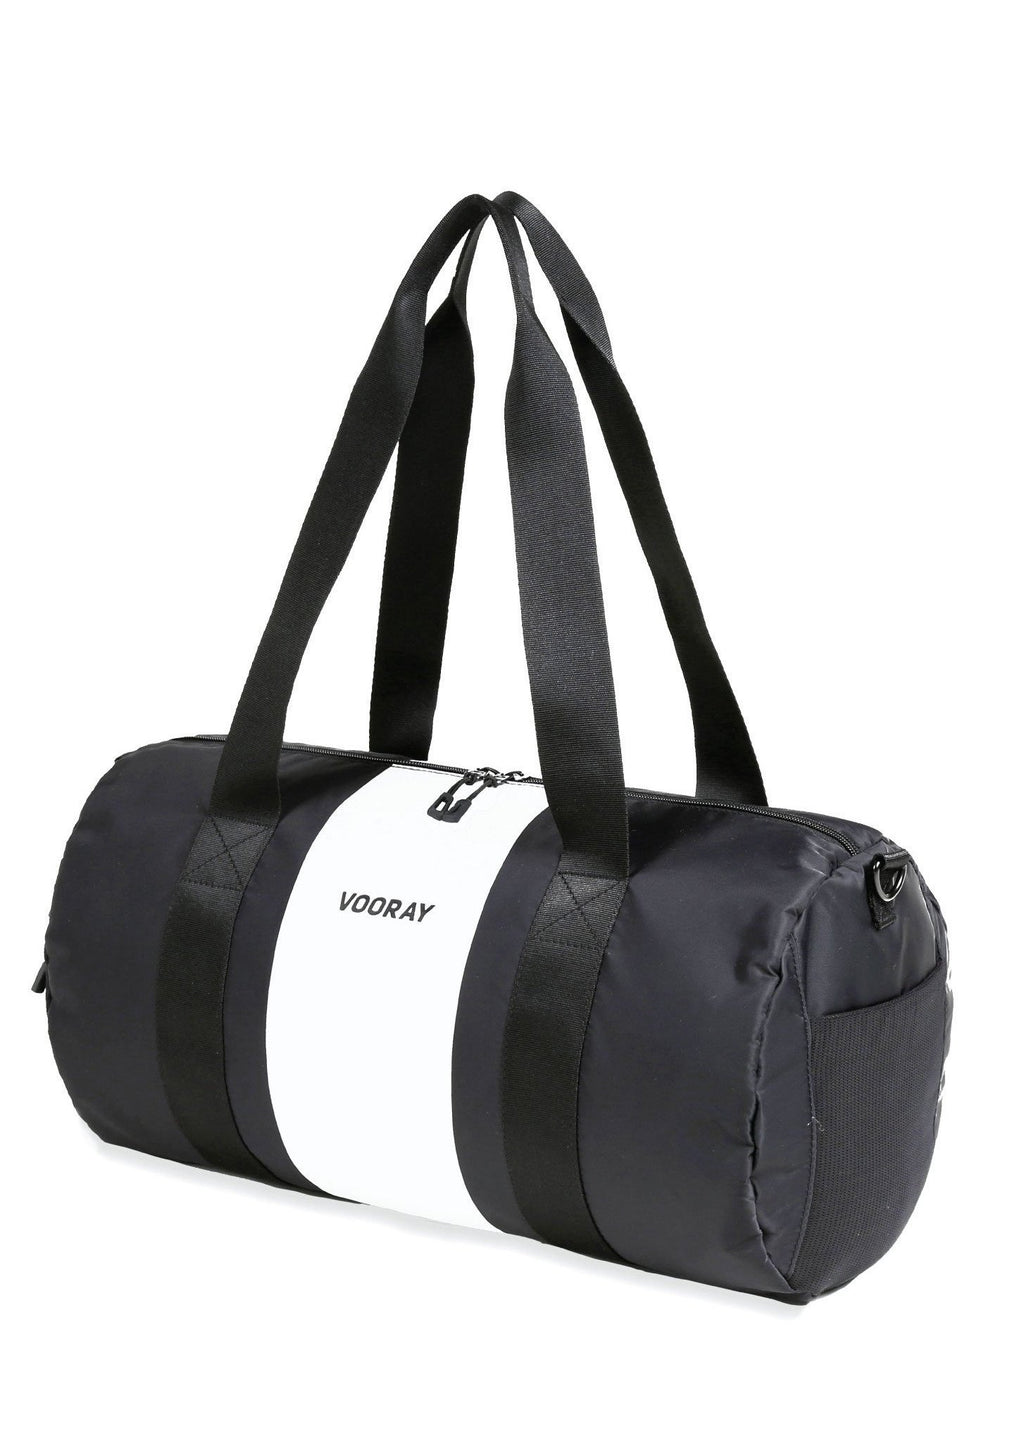 Iconic Gym Bag - Silver Stripe - PURE DASH